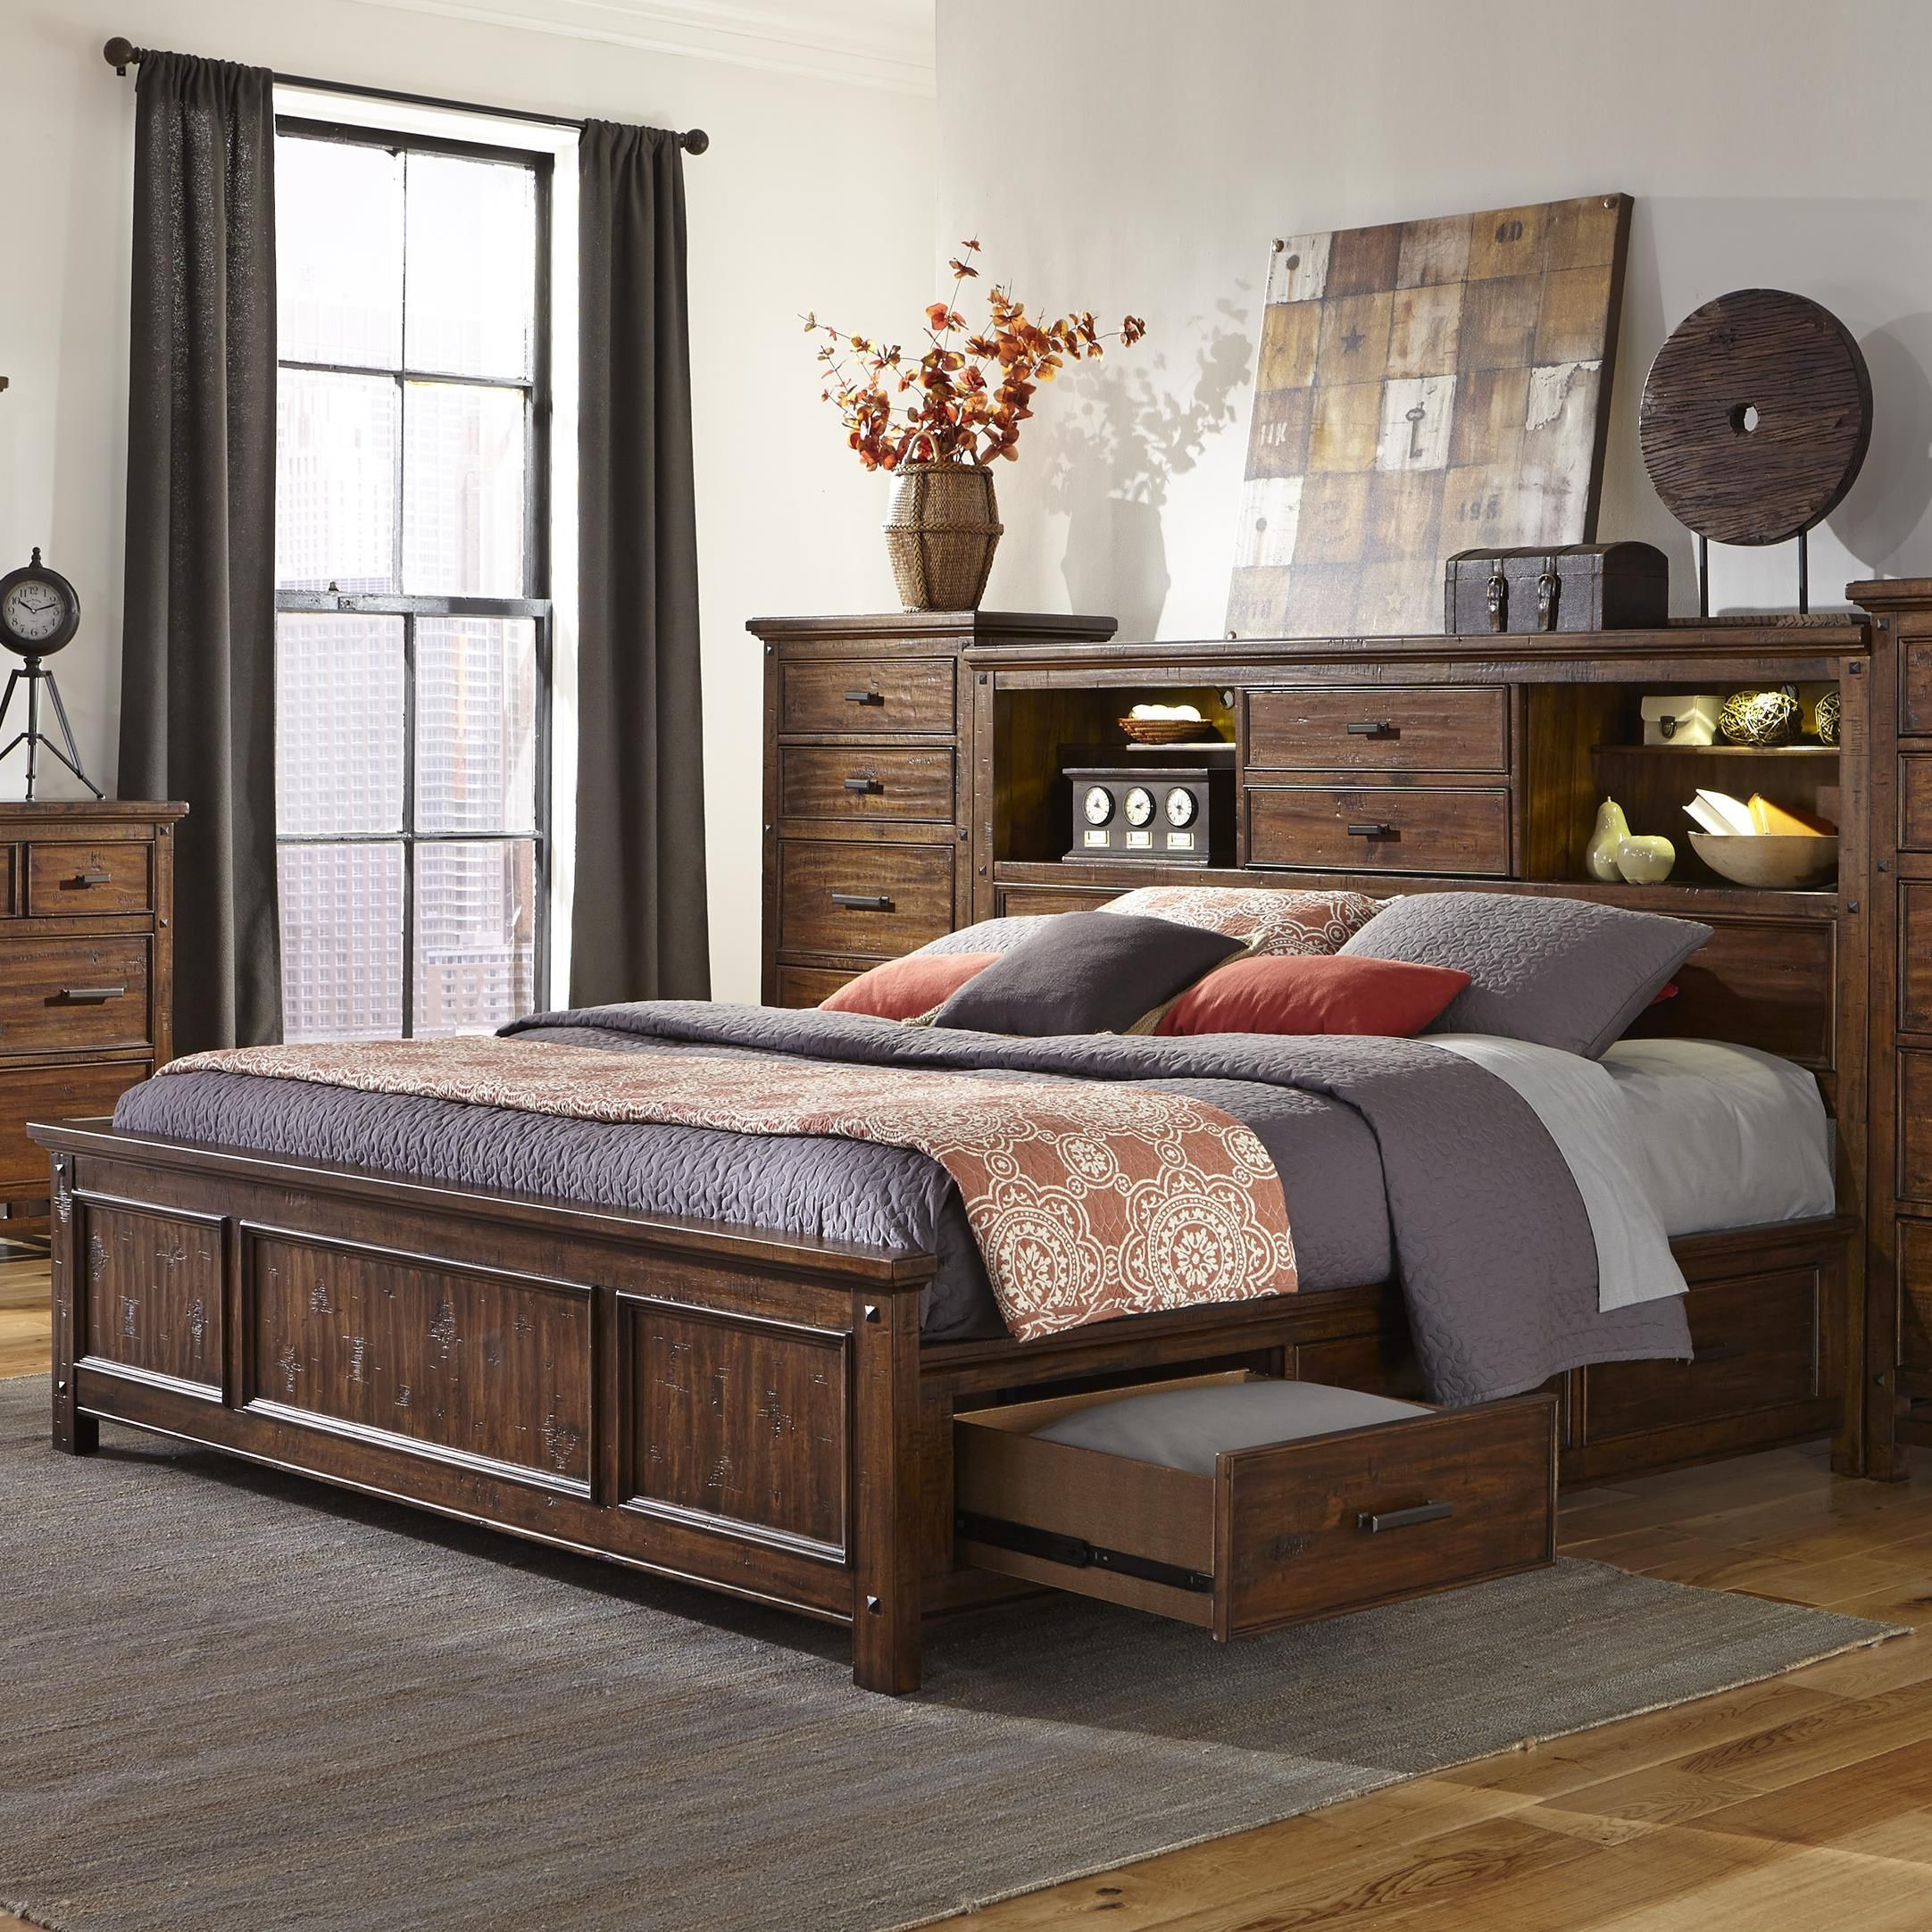 Furniture Stores Local: Wolf Creek Queen Bookcase Bed With Storage Rails By